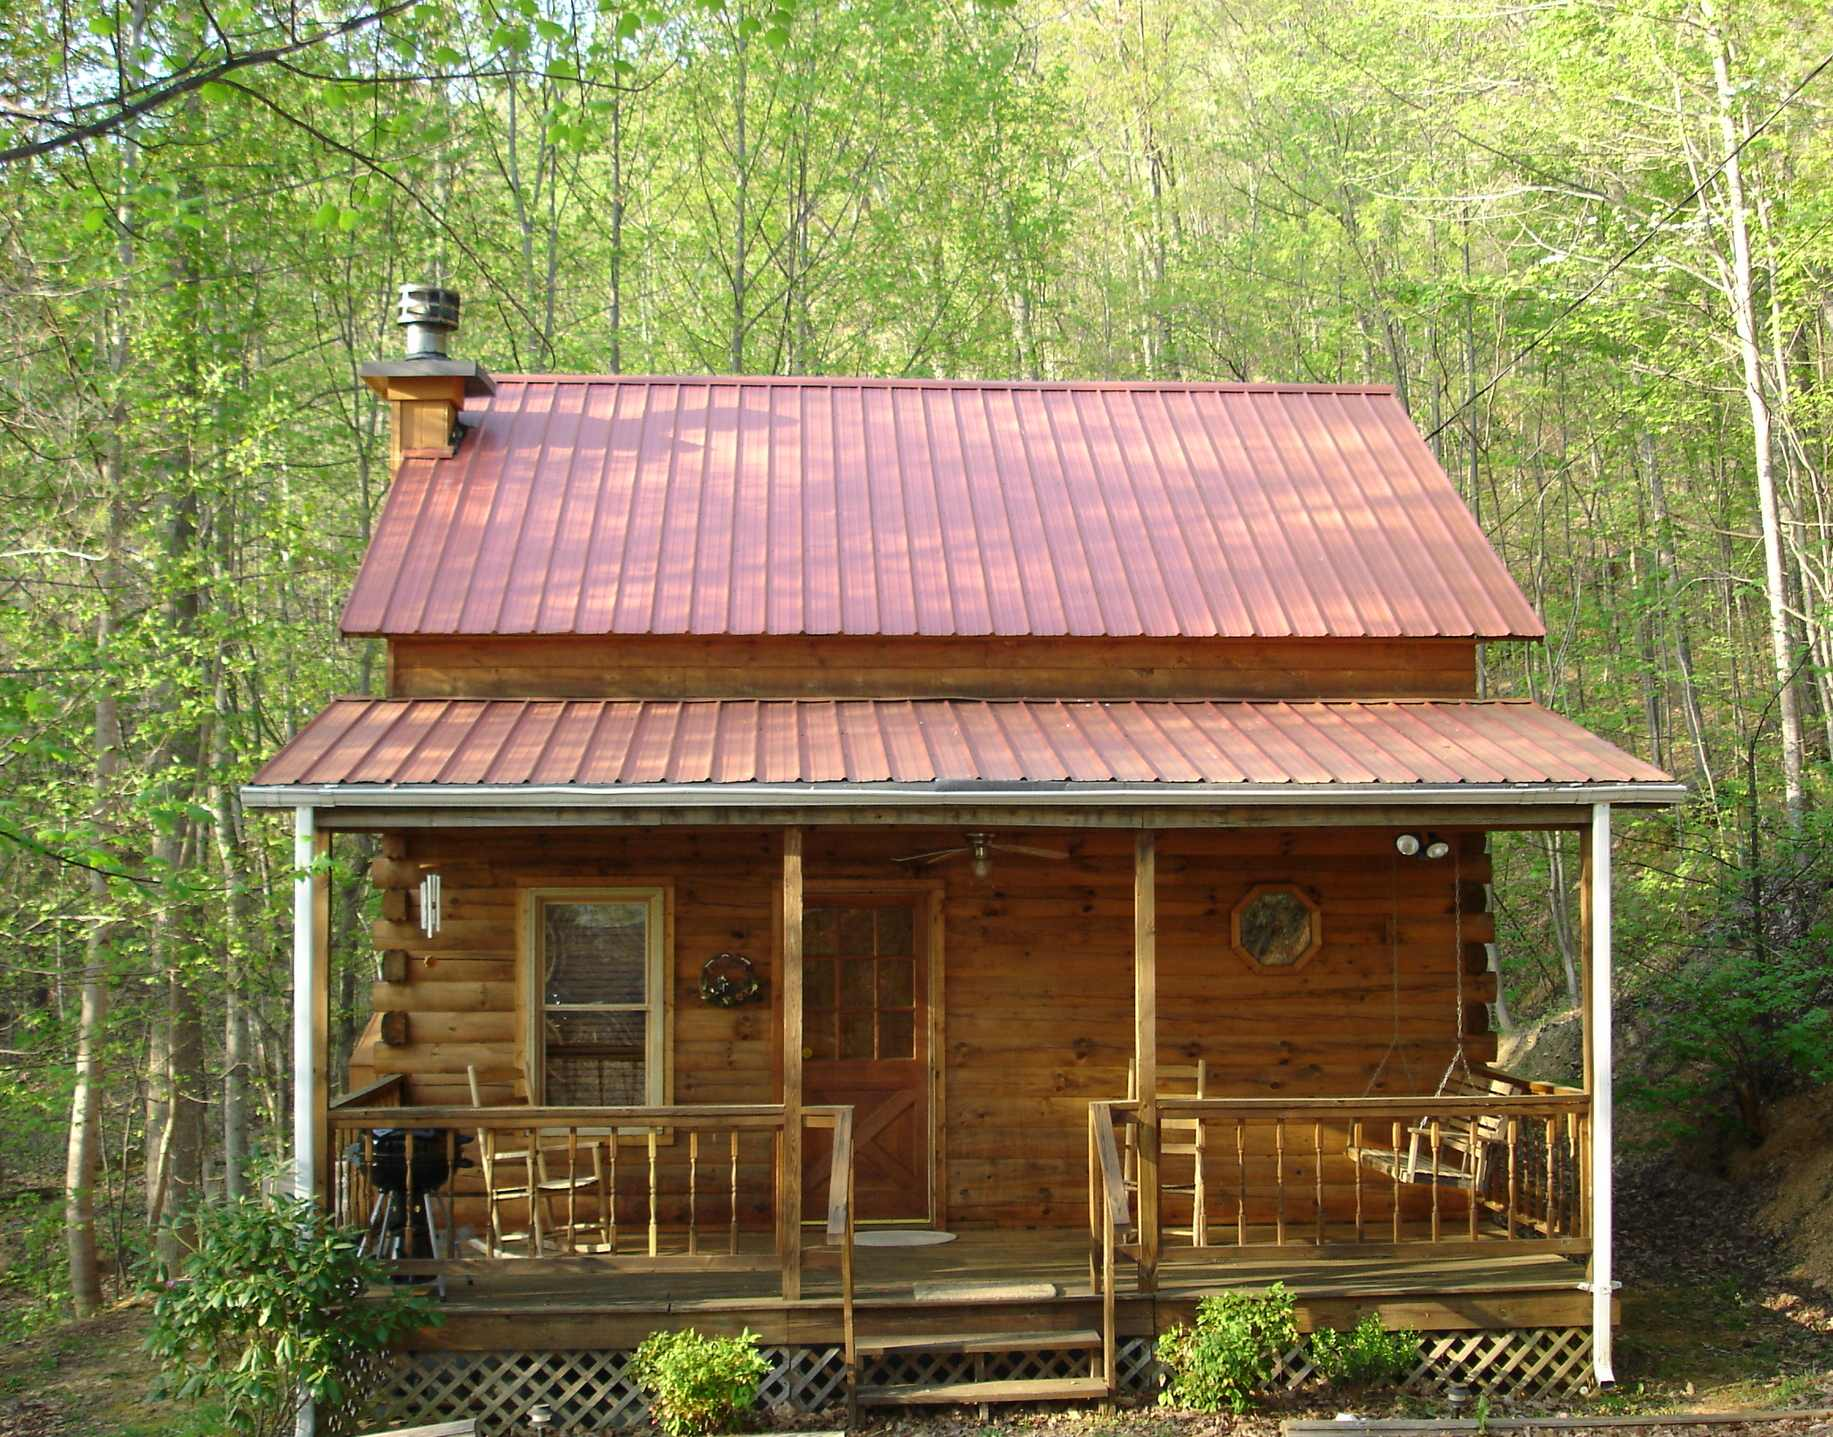 Cabin home log home lake house on pinterest log for Cabin house plans